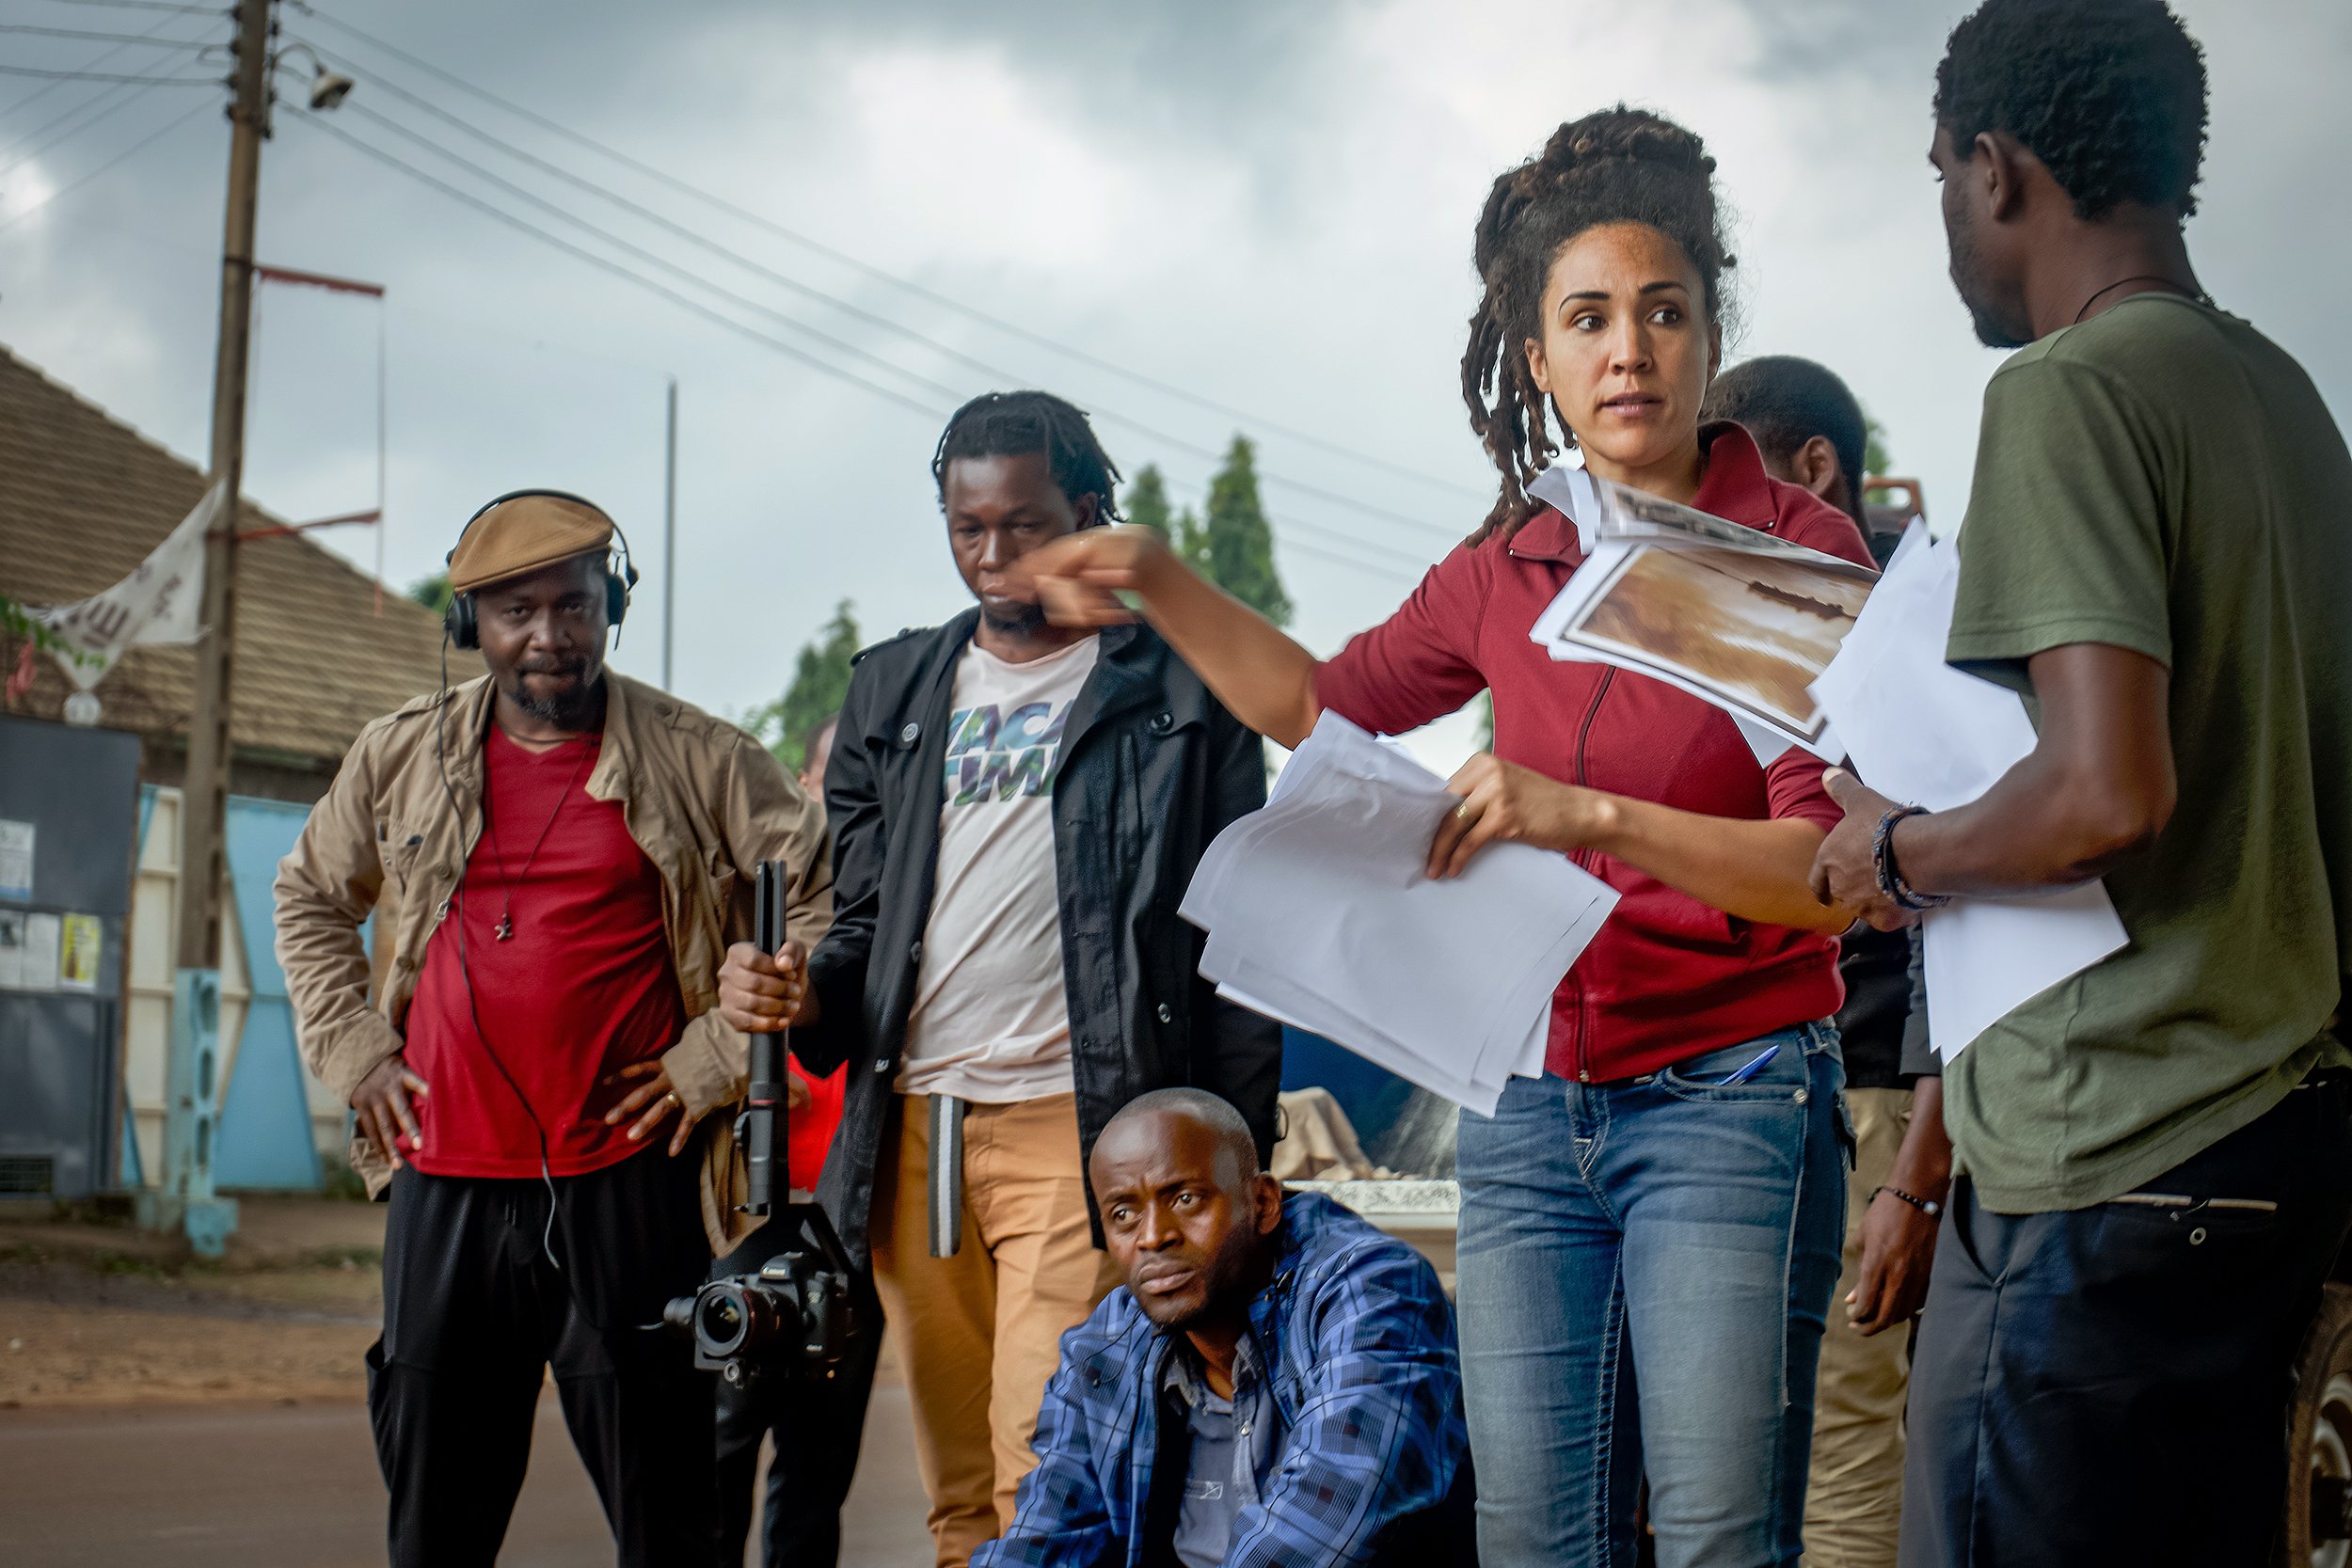 Cherie Rivers Ndaliko gives instructions to the cast of the film Matata